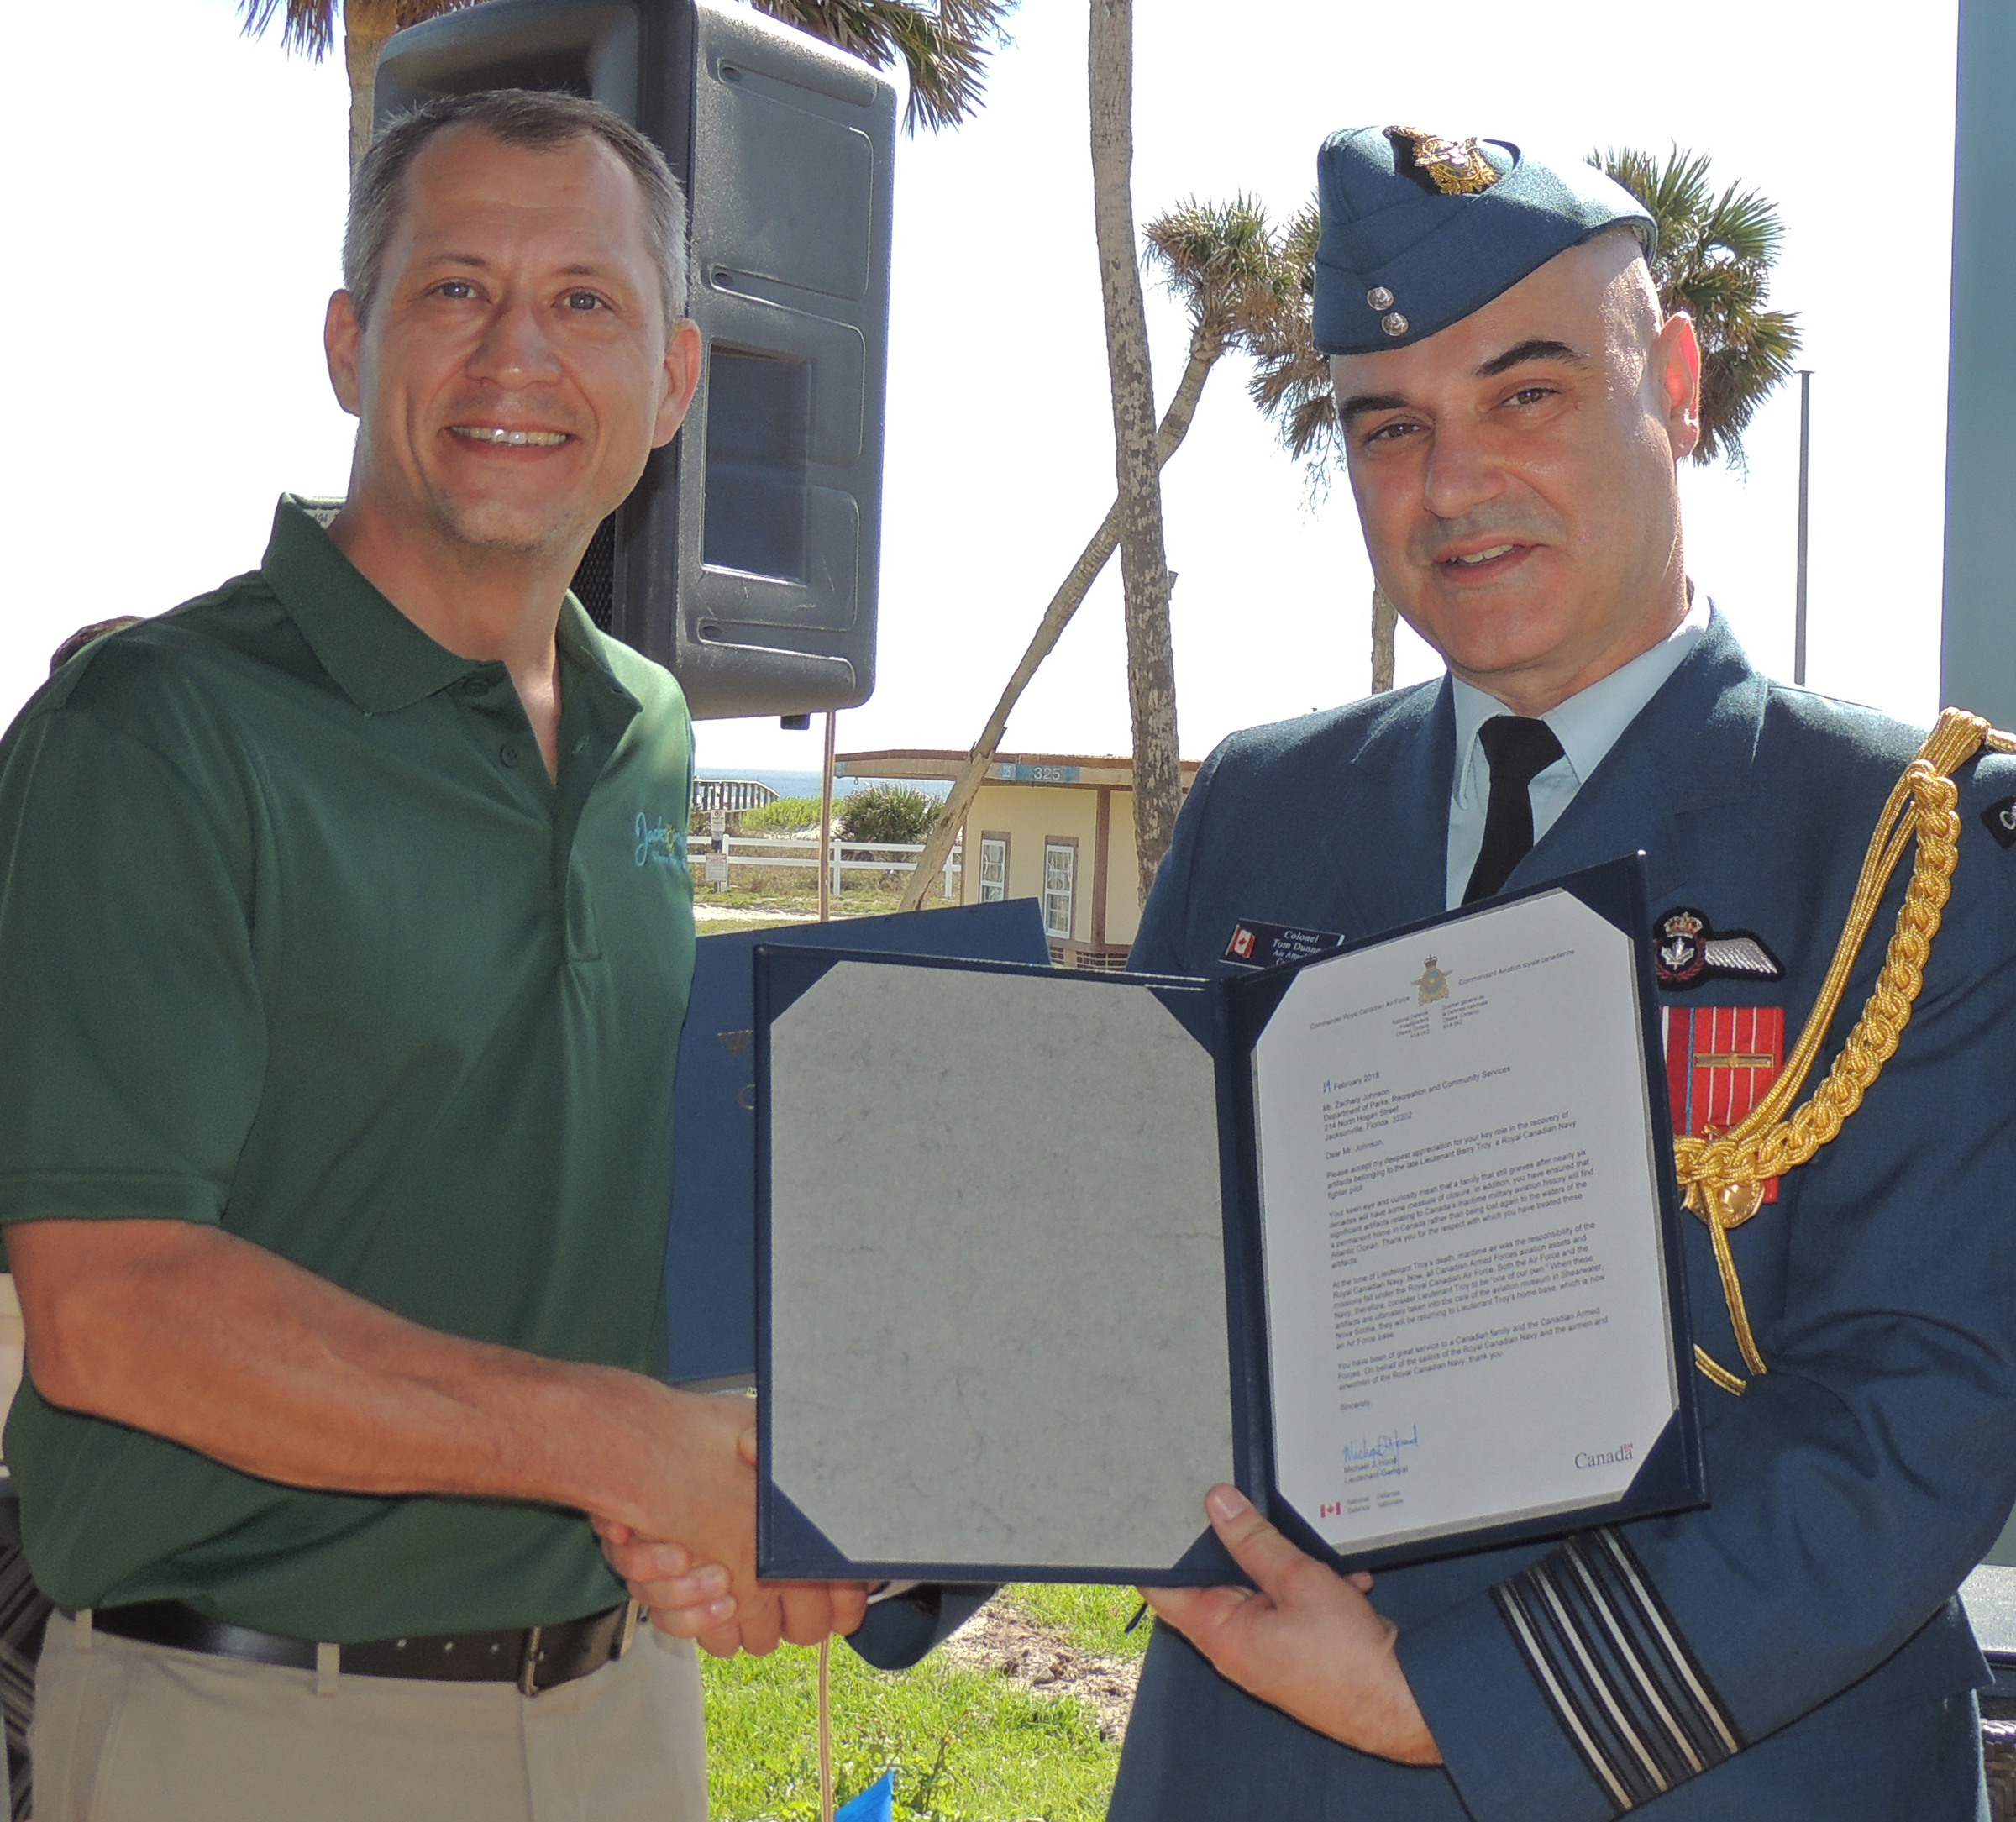 Colonel Tom Dunne (right), the Canadian air attaché at the Embassy of Canada in Washington, presents a letter of thanks signed by the commander of the Royal Canadian Air Force, Lieutenant-General Michael Hood, to Jacksonville park ranger Zach Johnson. Ranger Johnson first discovered the bundle of debris that turned out to be the parachute, life jacket and other items that had been worn by Lieutenant Barry Troy when he disappeared off the coast of Florida on February 26, 1958. PHOTO: Joanna Calder, RCAF public affairs